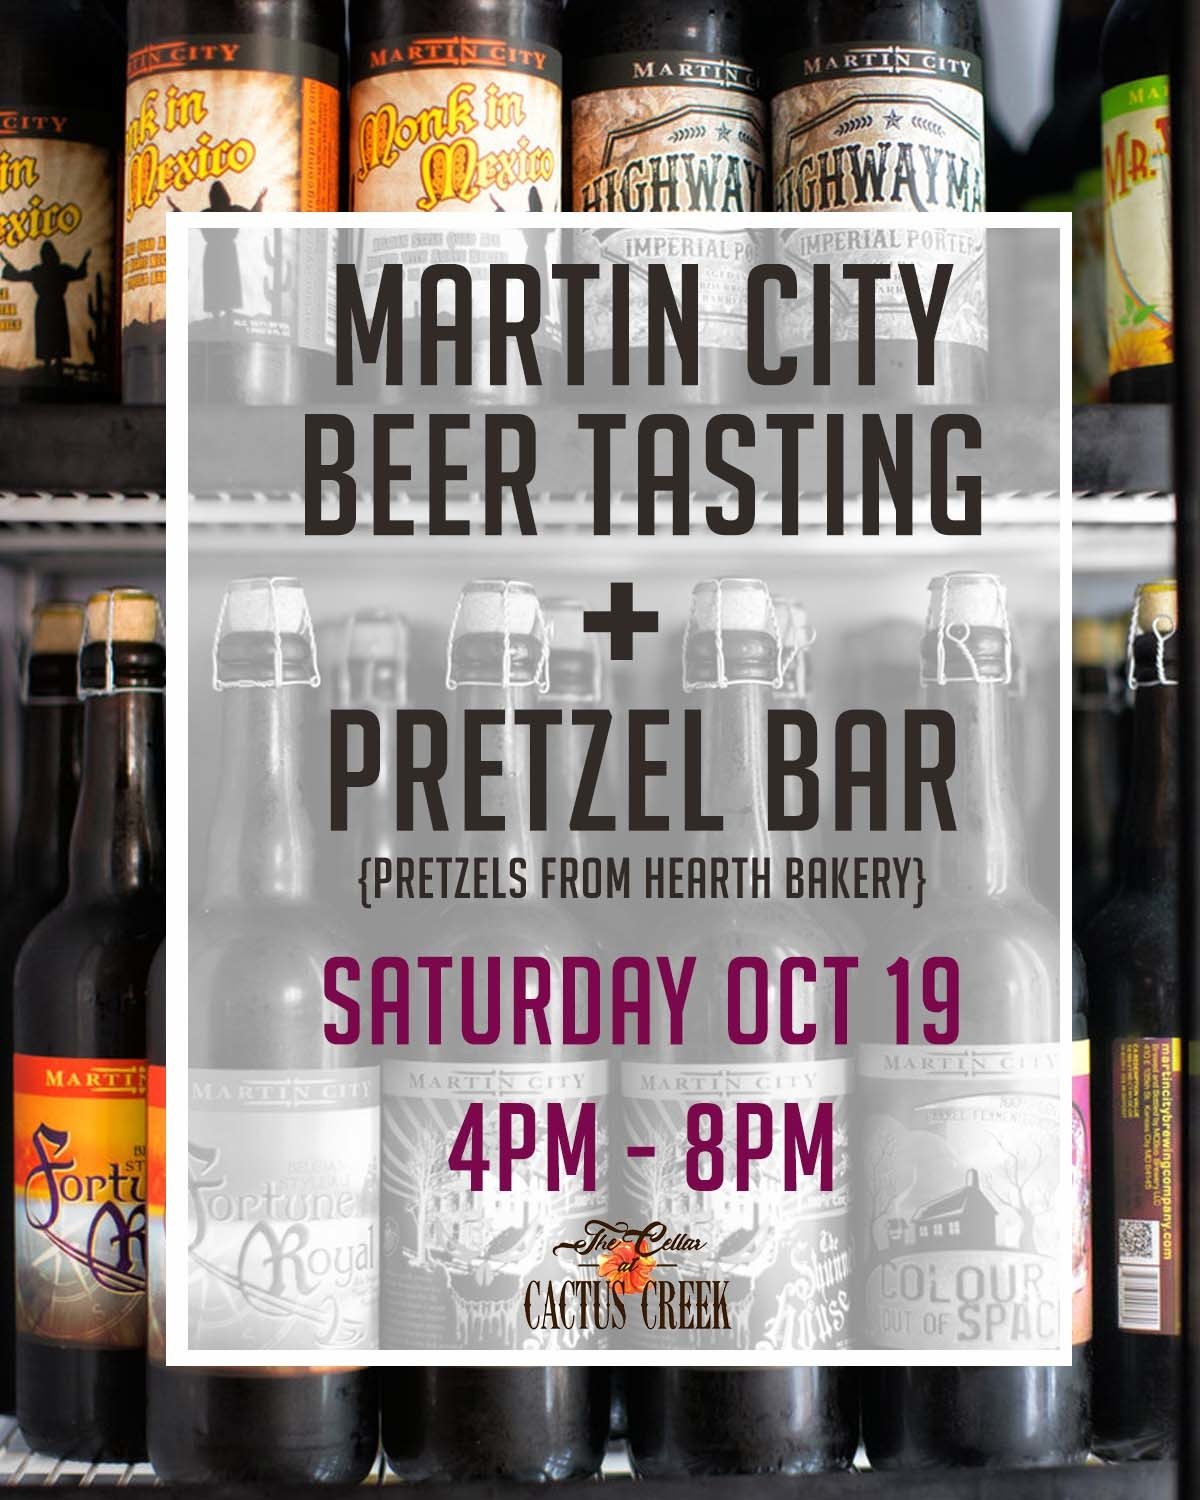 Pretzel Bar + Martin City Beer Tasting